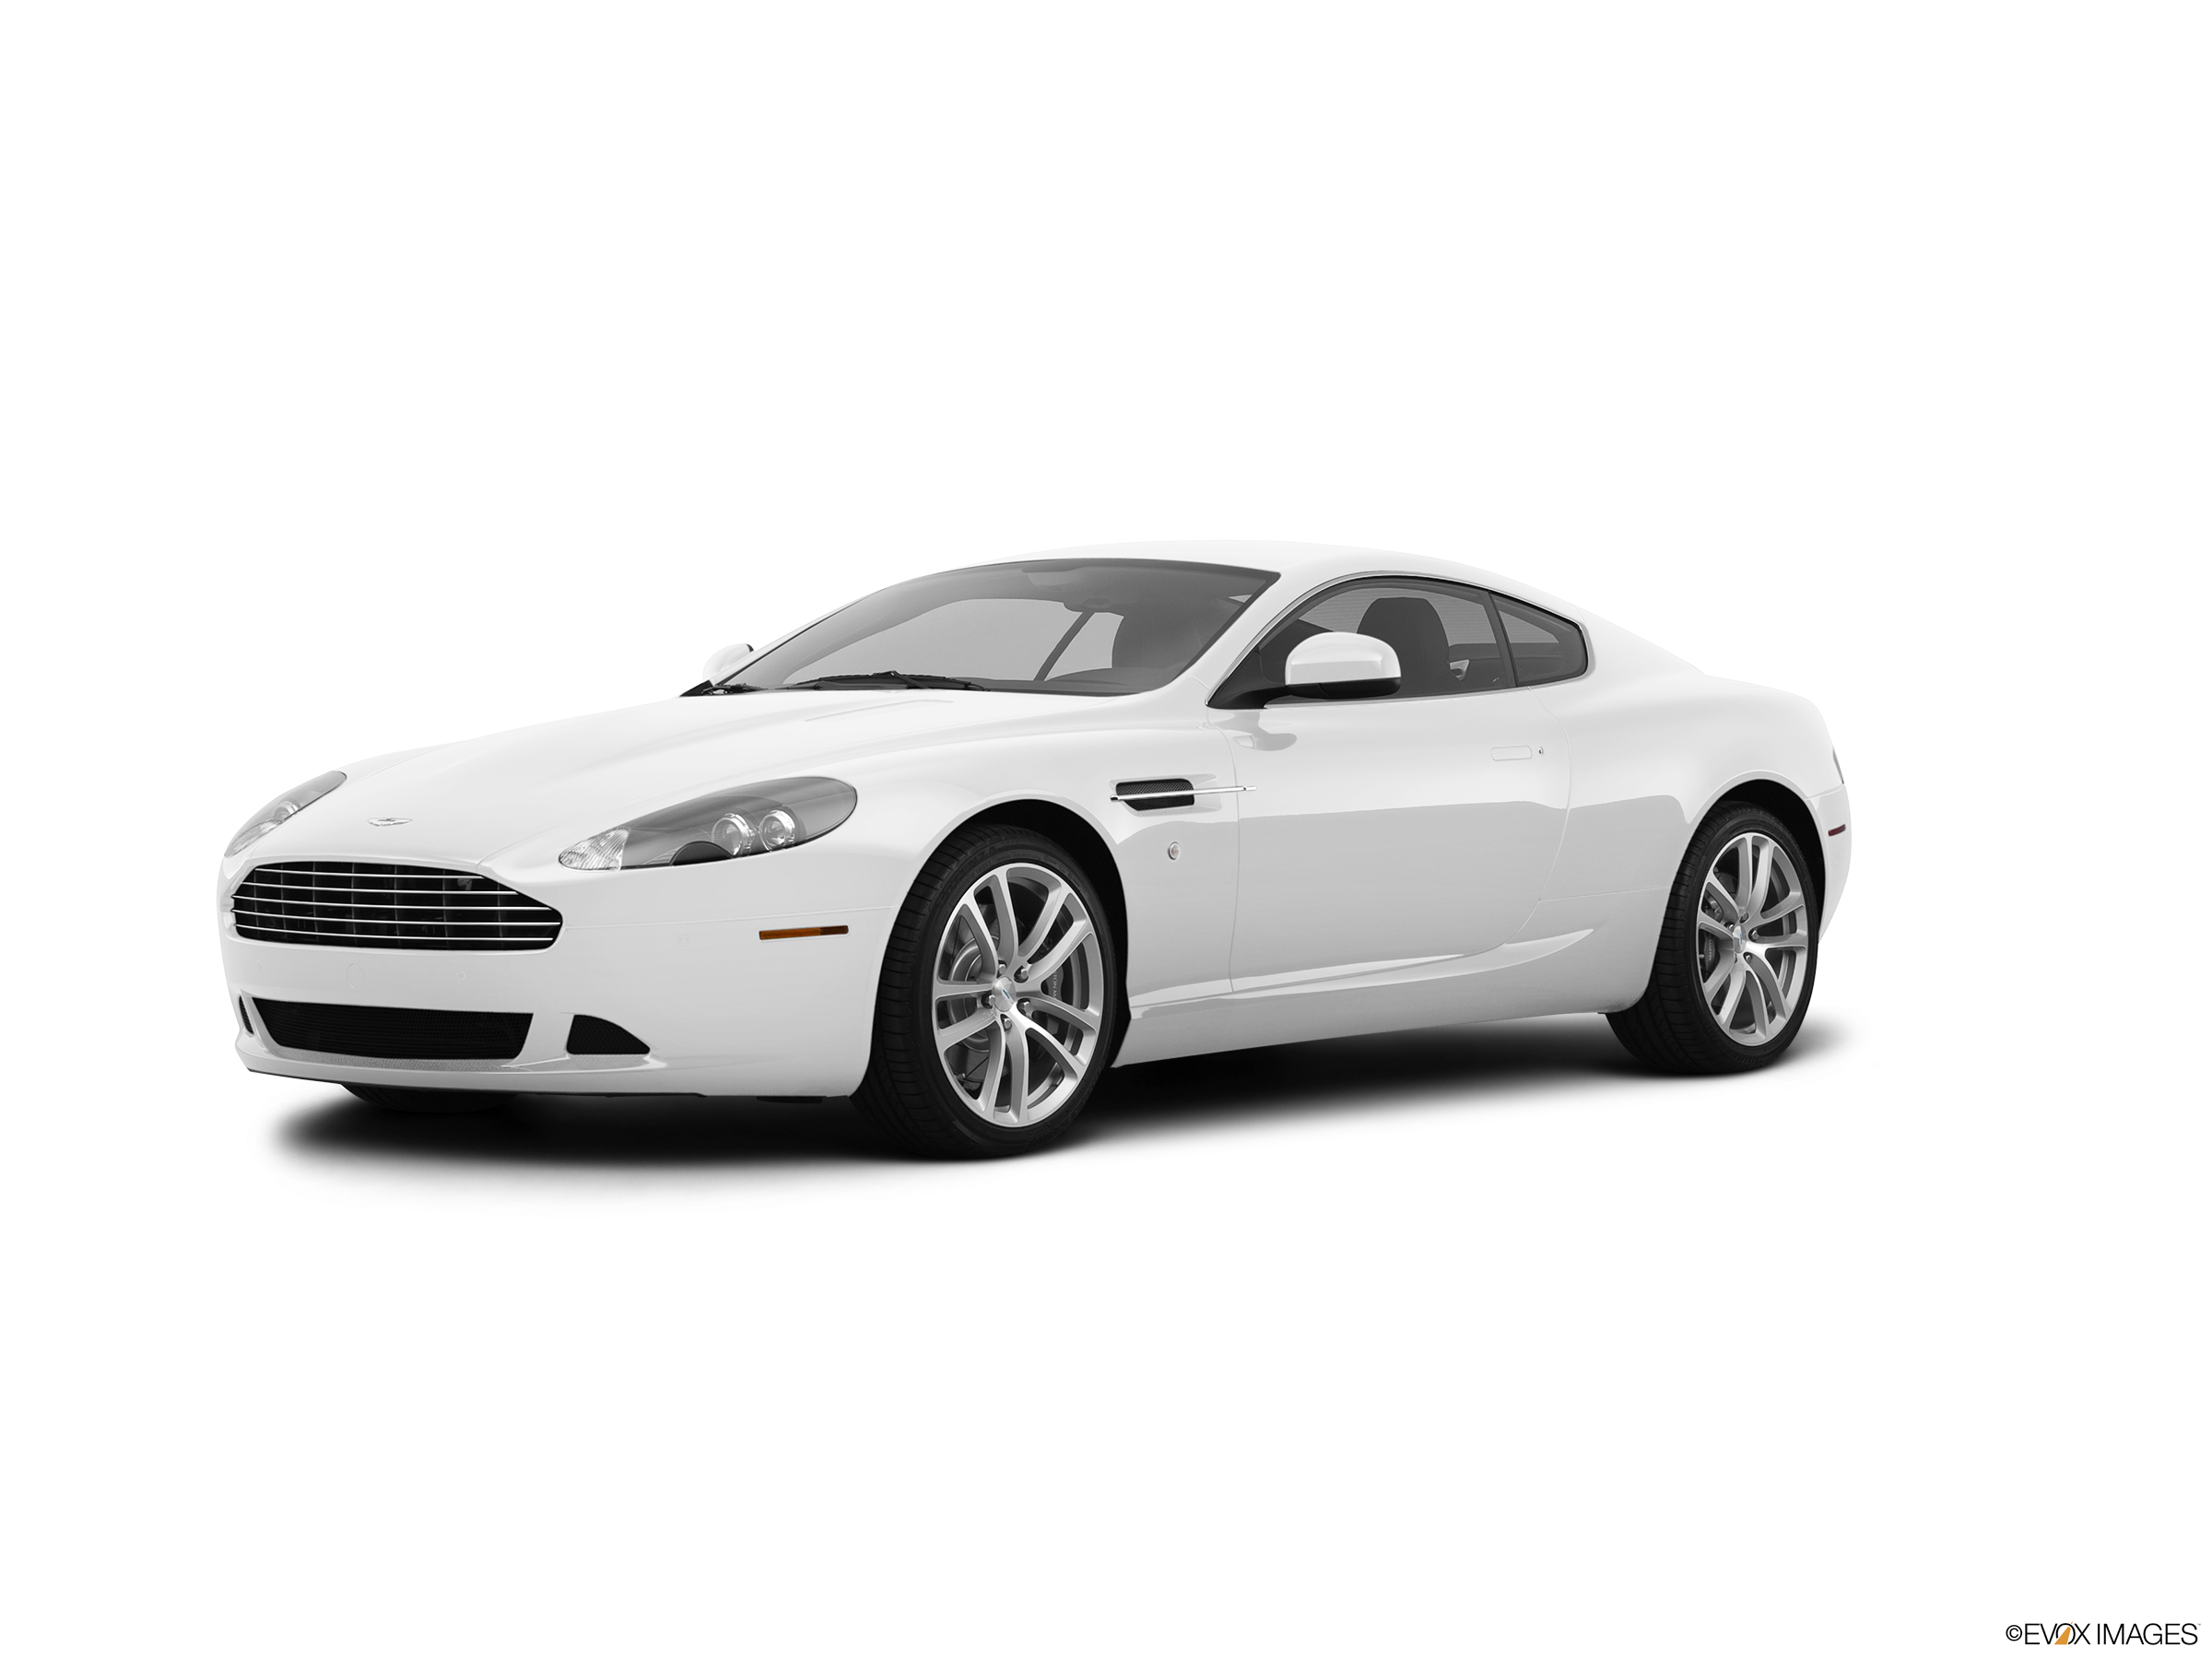 2011 Aston Martin Db9 Values Cars For Sale Kelley Blue Book